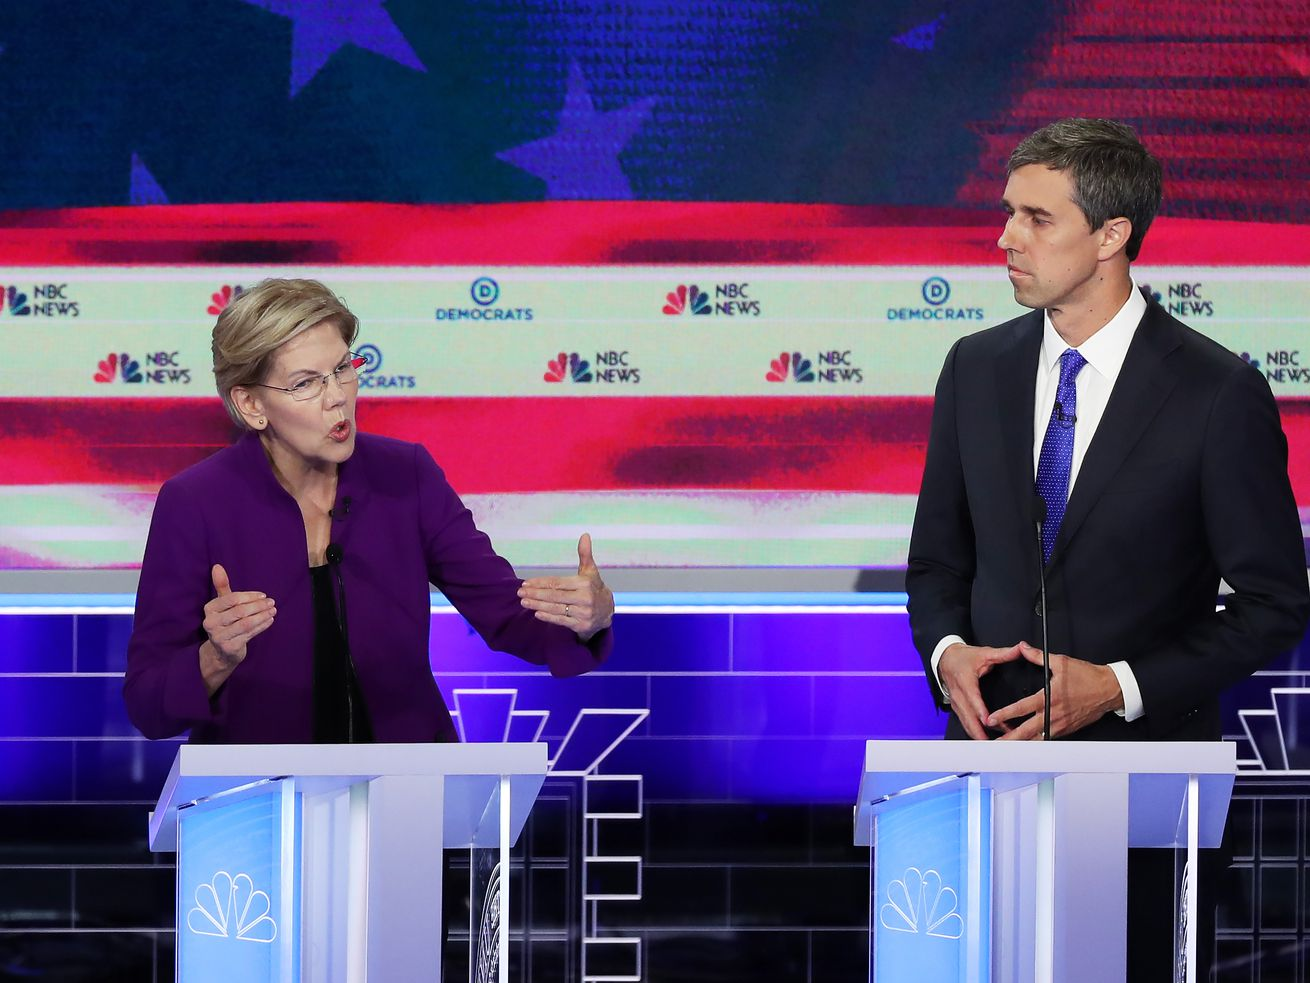 Sen. Elizabeth Warren (D-MA) and former Rep. Beto O'Rourke (D-TX) both said that climate change was the top threat to the United States during the first Democratic 2020 presidential debate.